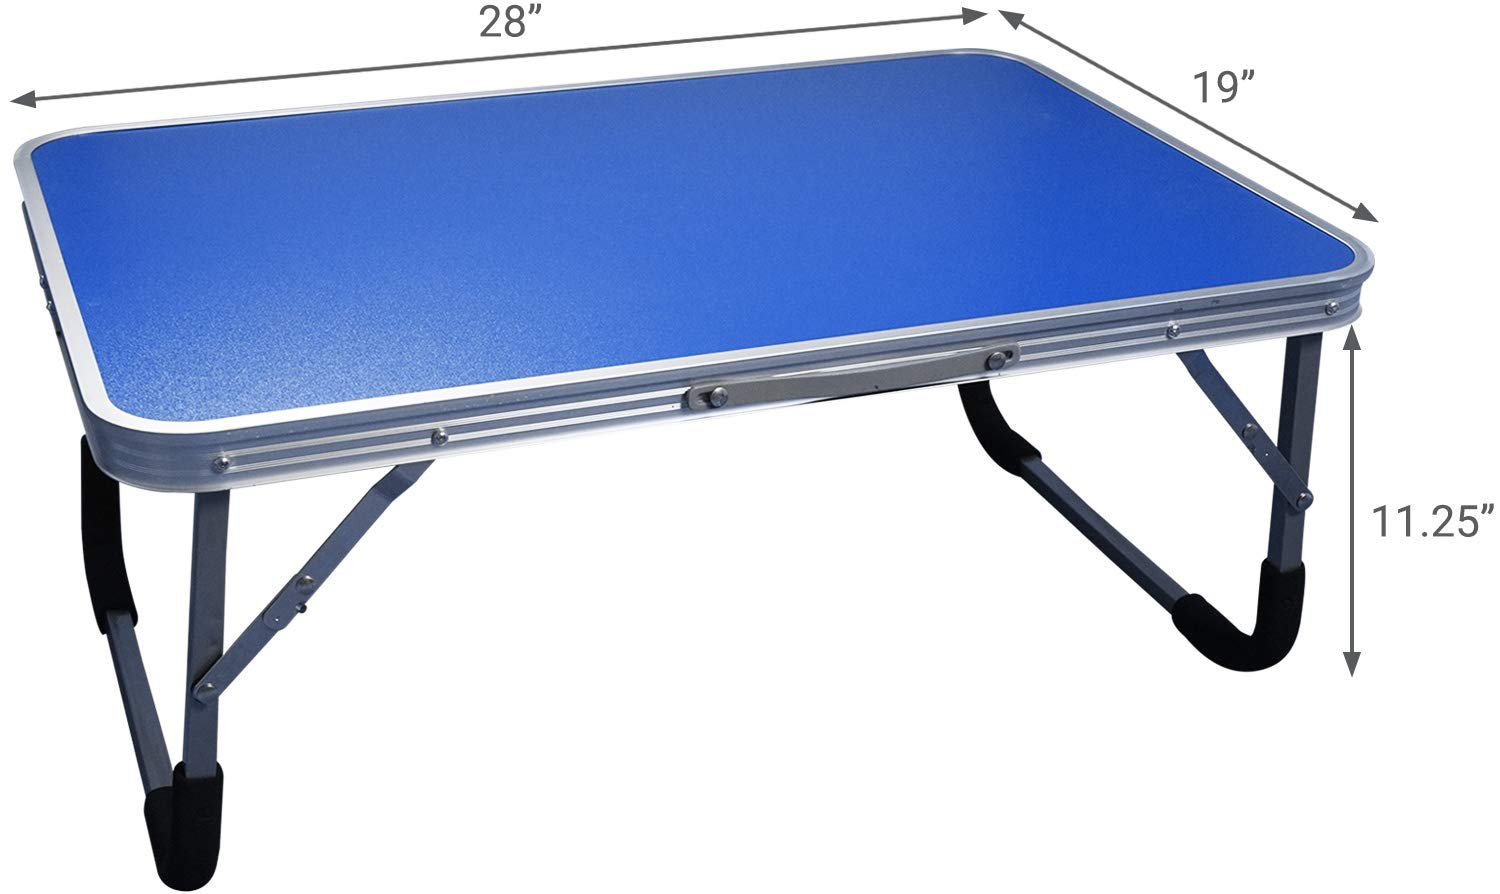 Extra Large Folding Desk Tray - Featuring Locking Foldable Leg Design and Carry Handle - for use in Bed, Computer, Picnic, or Kids Playtime by BrightCare (Image #5)